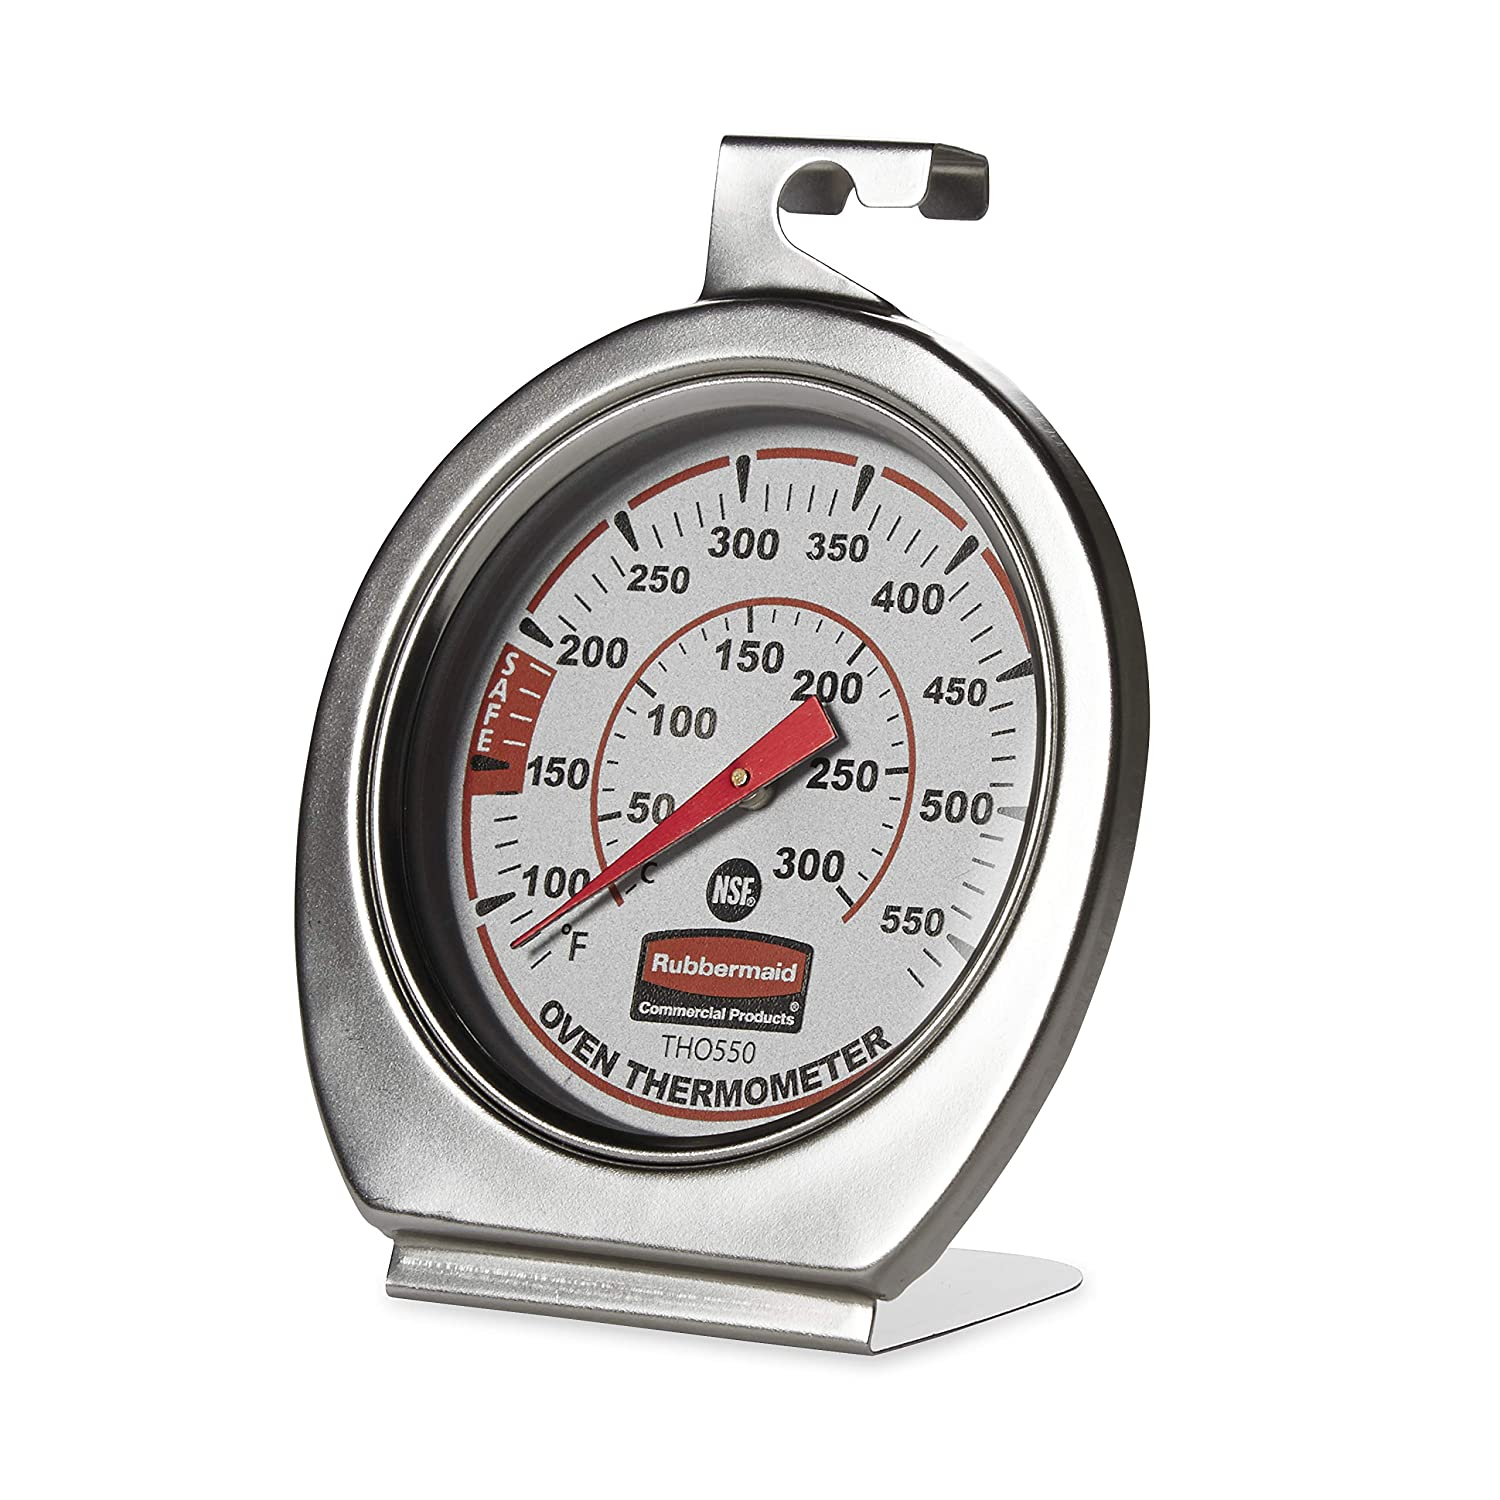 2. OVEN THERMOMETER